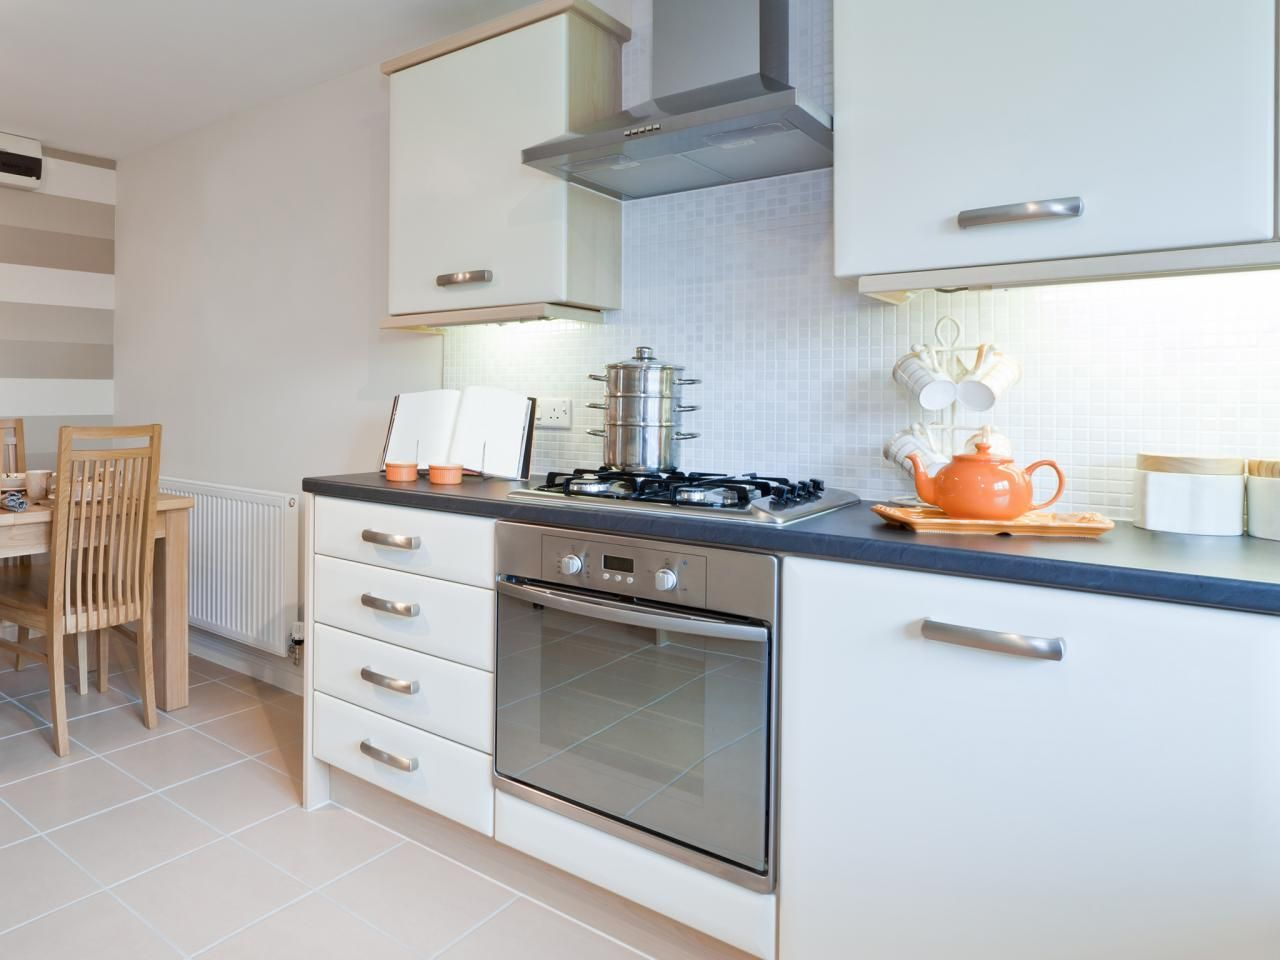 Small kitchen cabinets pictures options tips u ideas kitchen